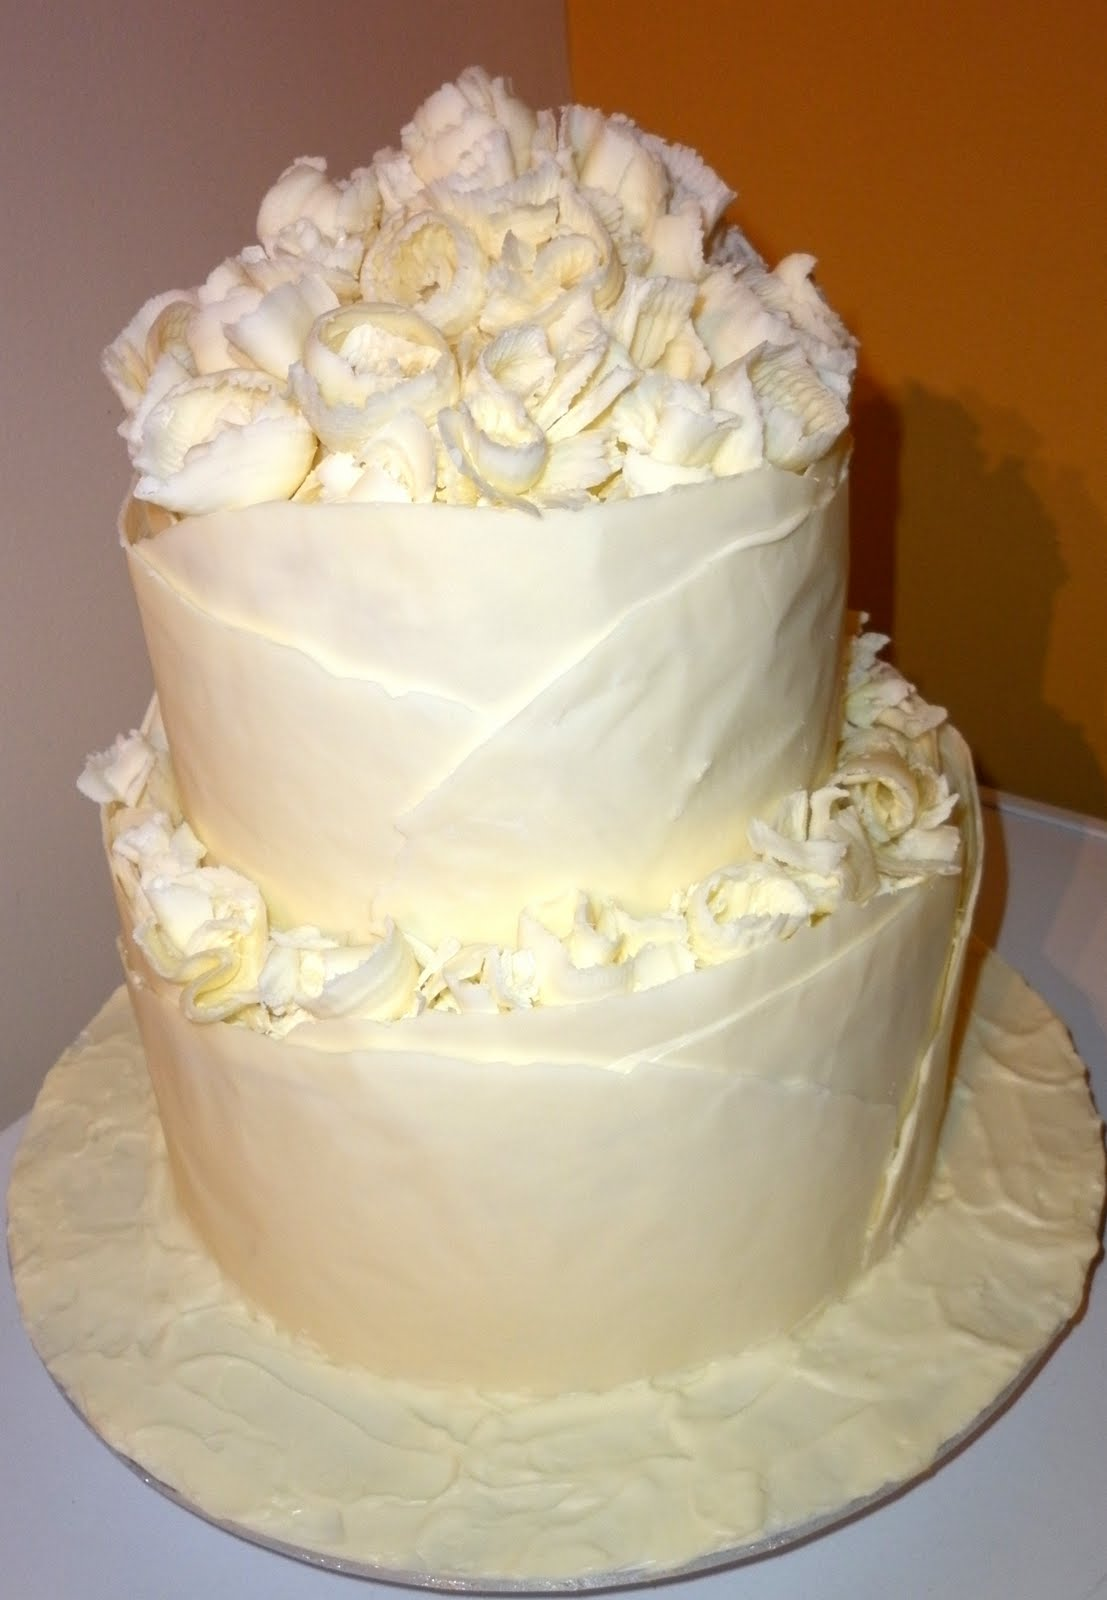 Caketopia: White Chocolate Wedding Cake for Ron and Lee